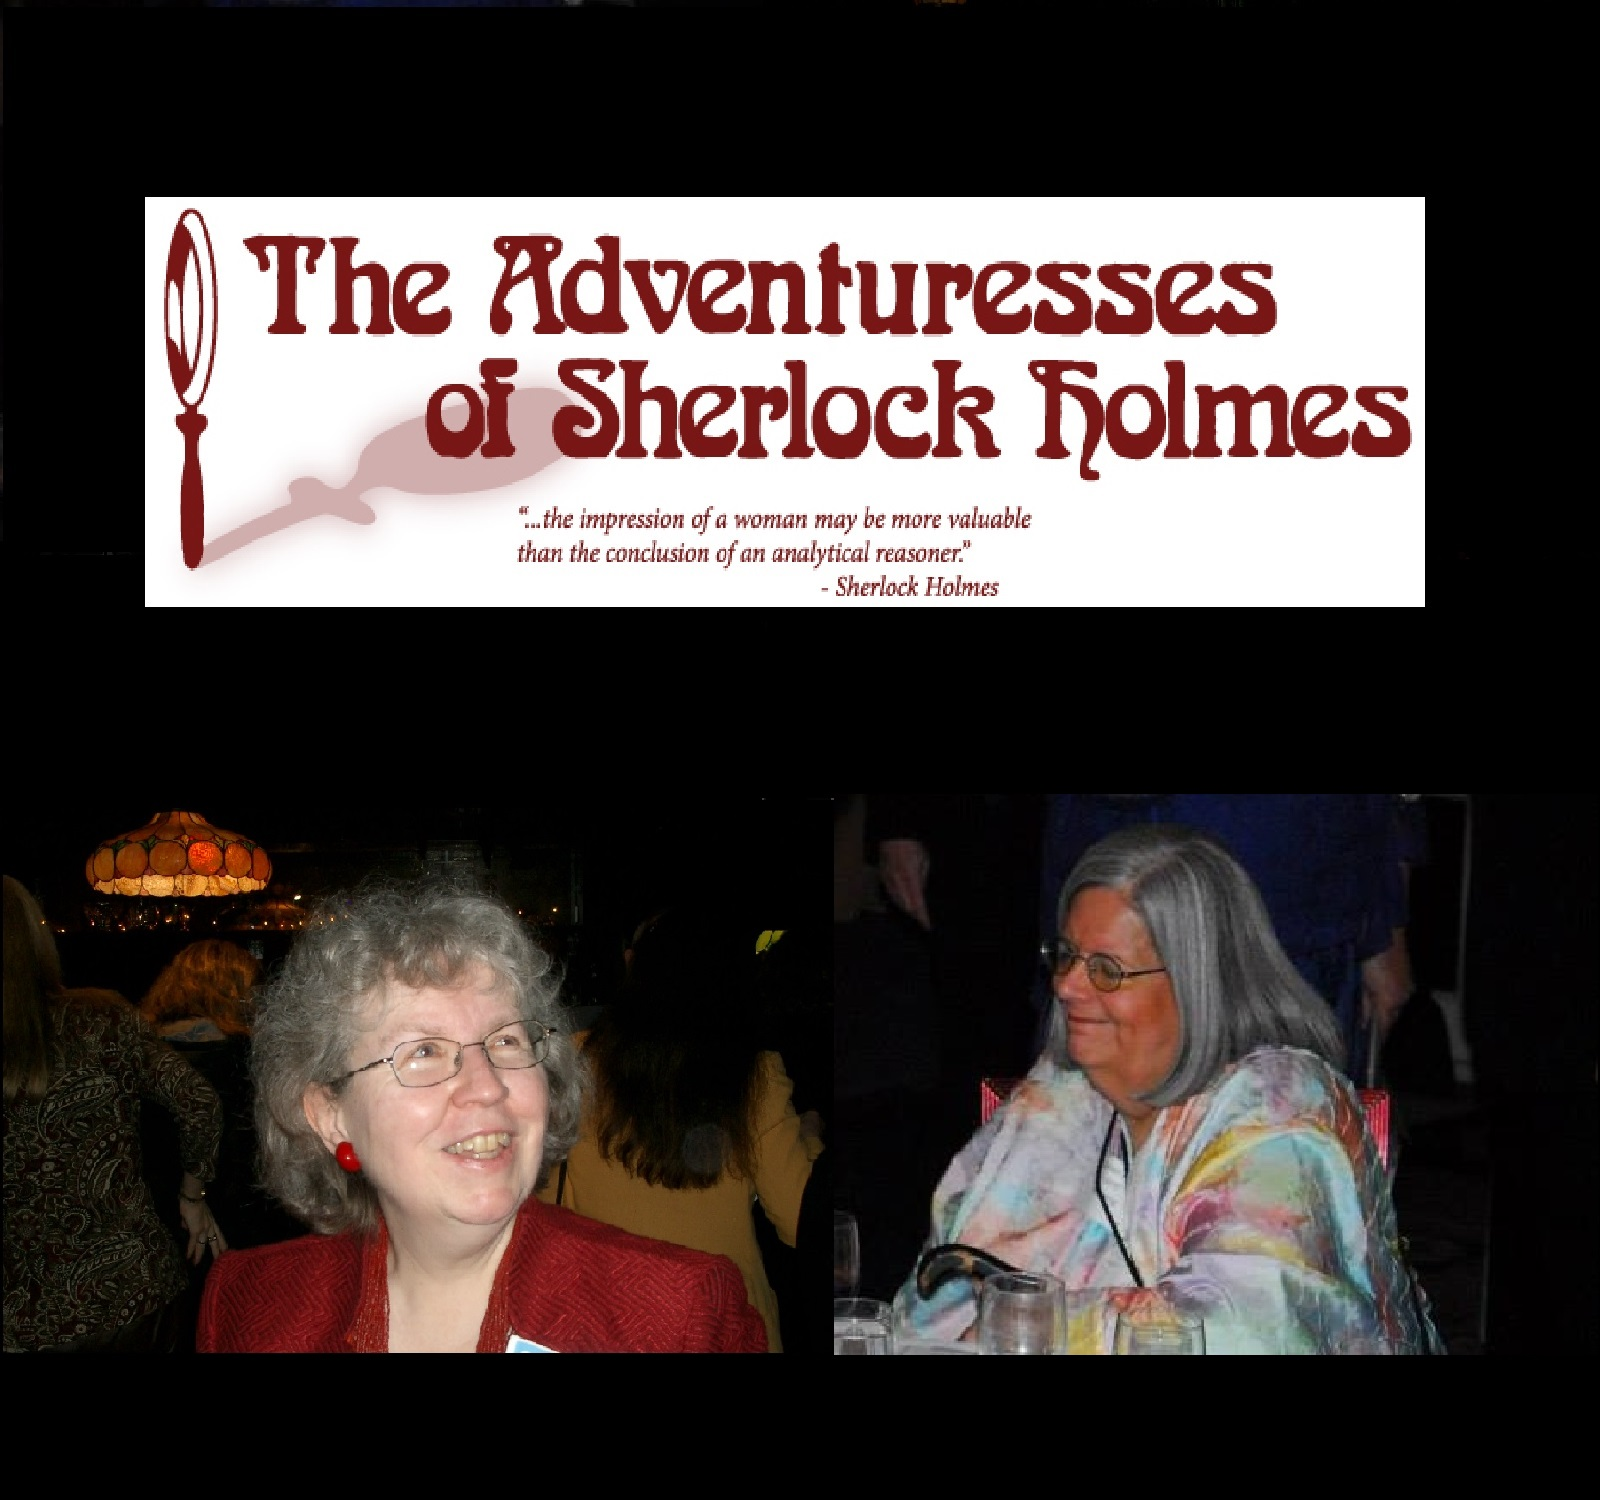 Episode 89: The Adventuresses of Sherlock Holmes